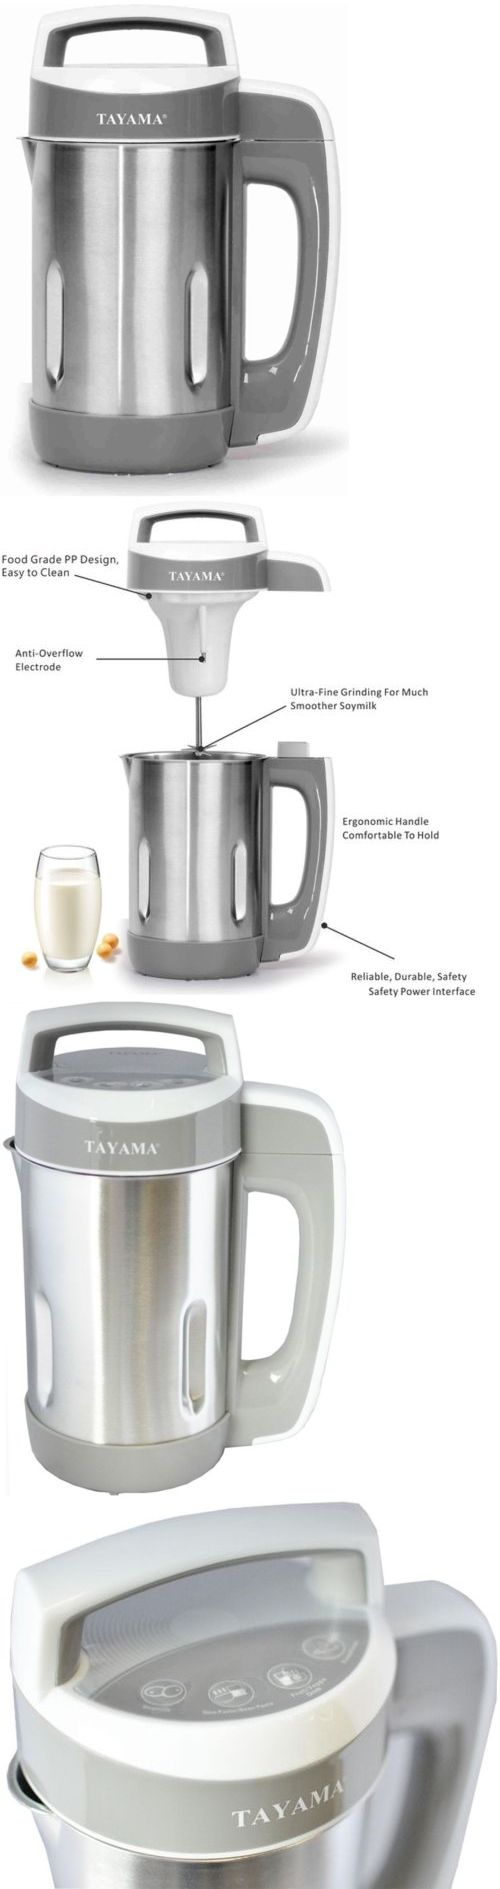 Uncategorized The Bay Small Kitchen Appliances best 25 small kitchen appliances ideas on pinterest other 20685 tayama automatic operation soy milk maker buy it